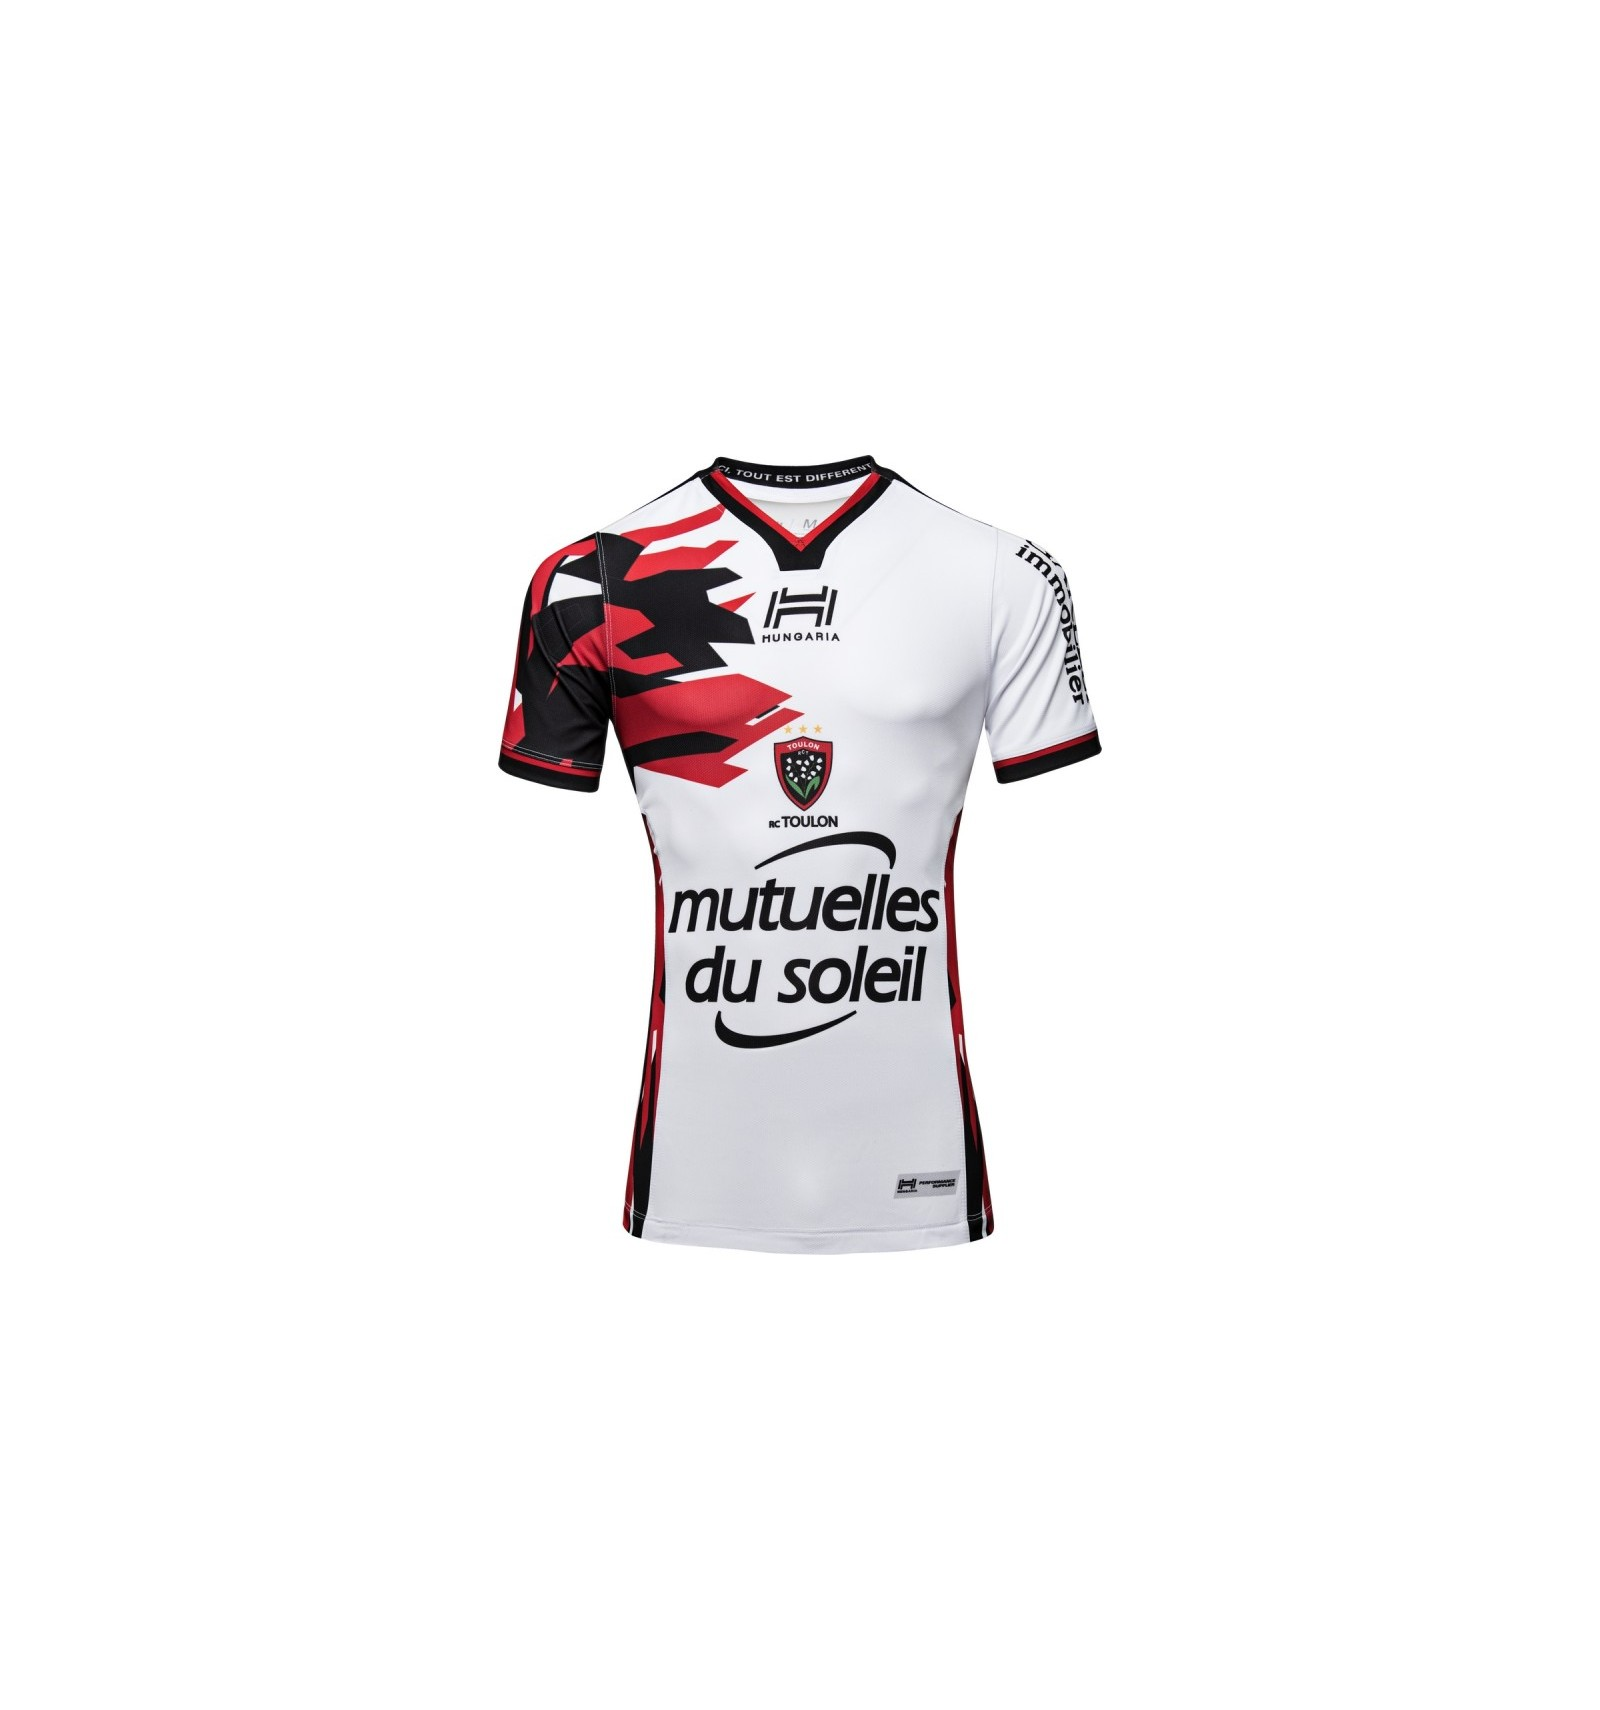 check out 36209 0dfe5 Maillot RCT Toulon third 2018-19 Hungaria blanc rouge noir